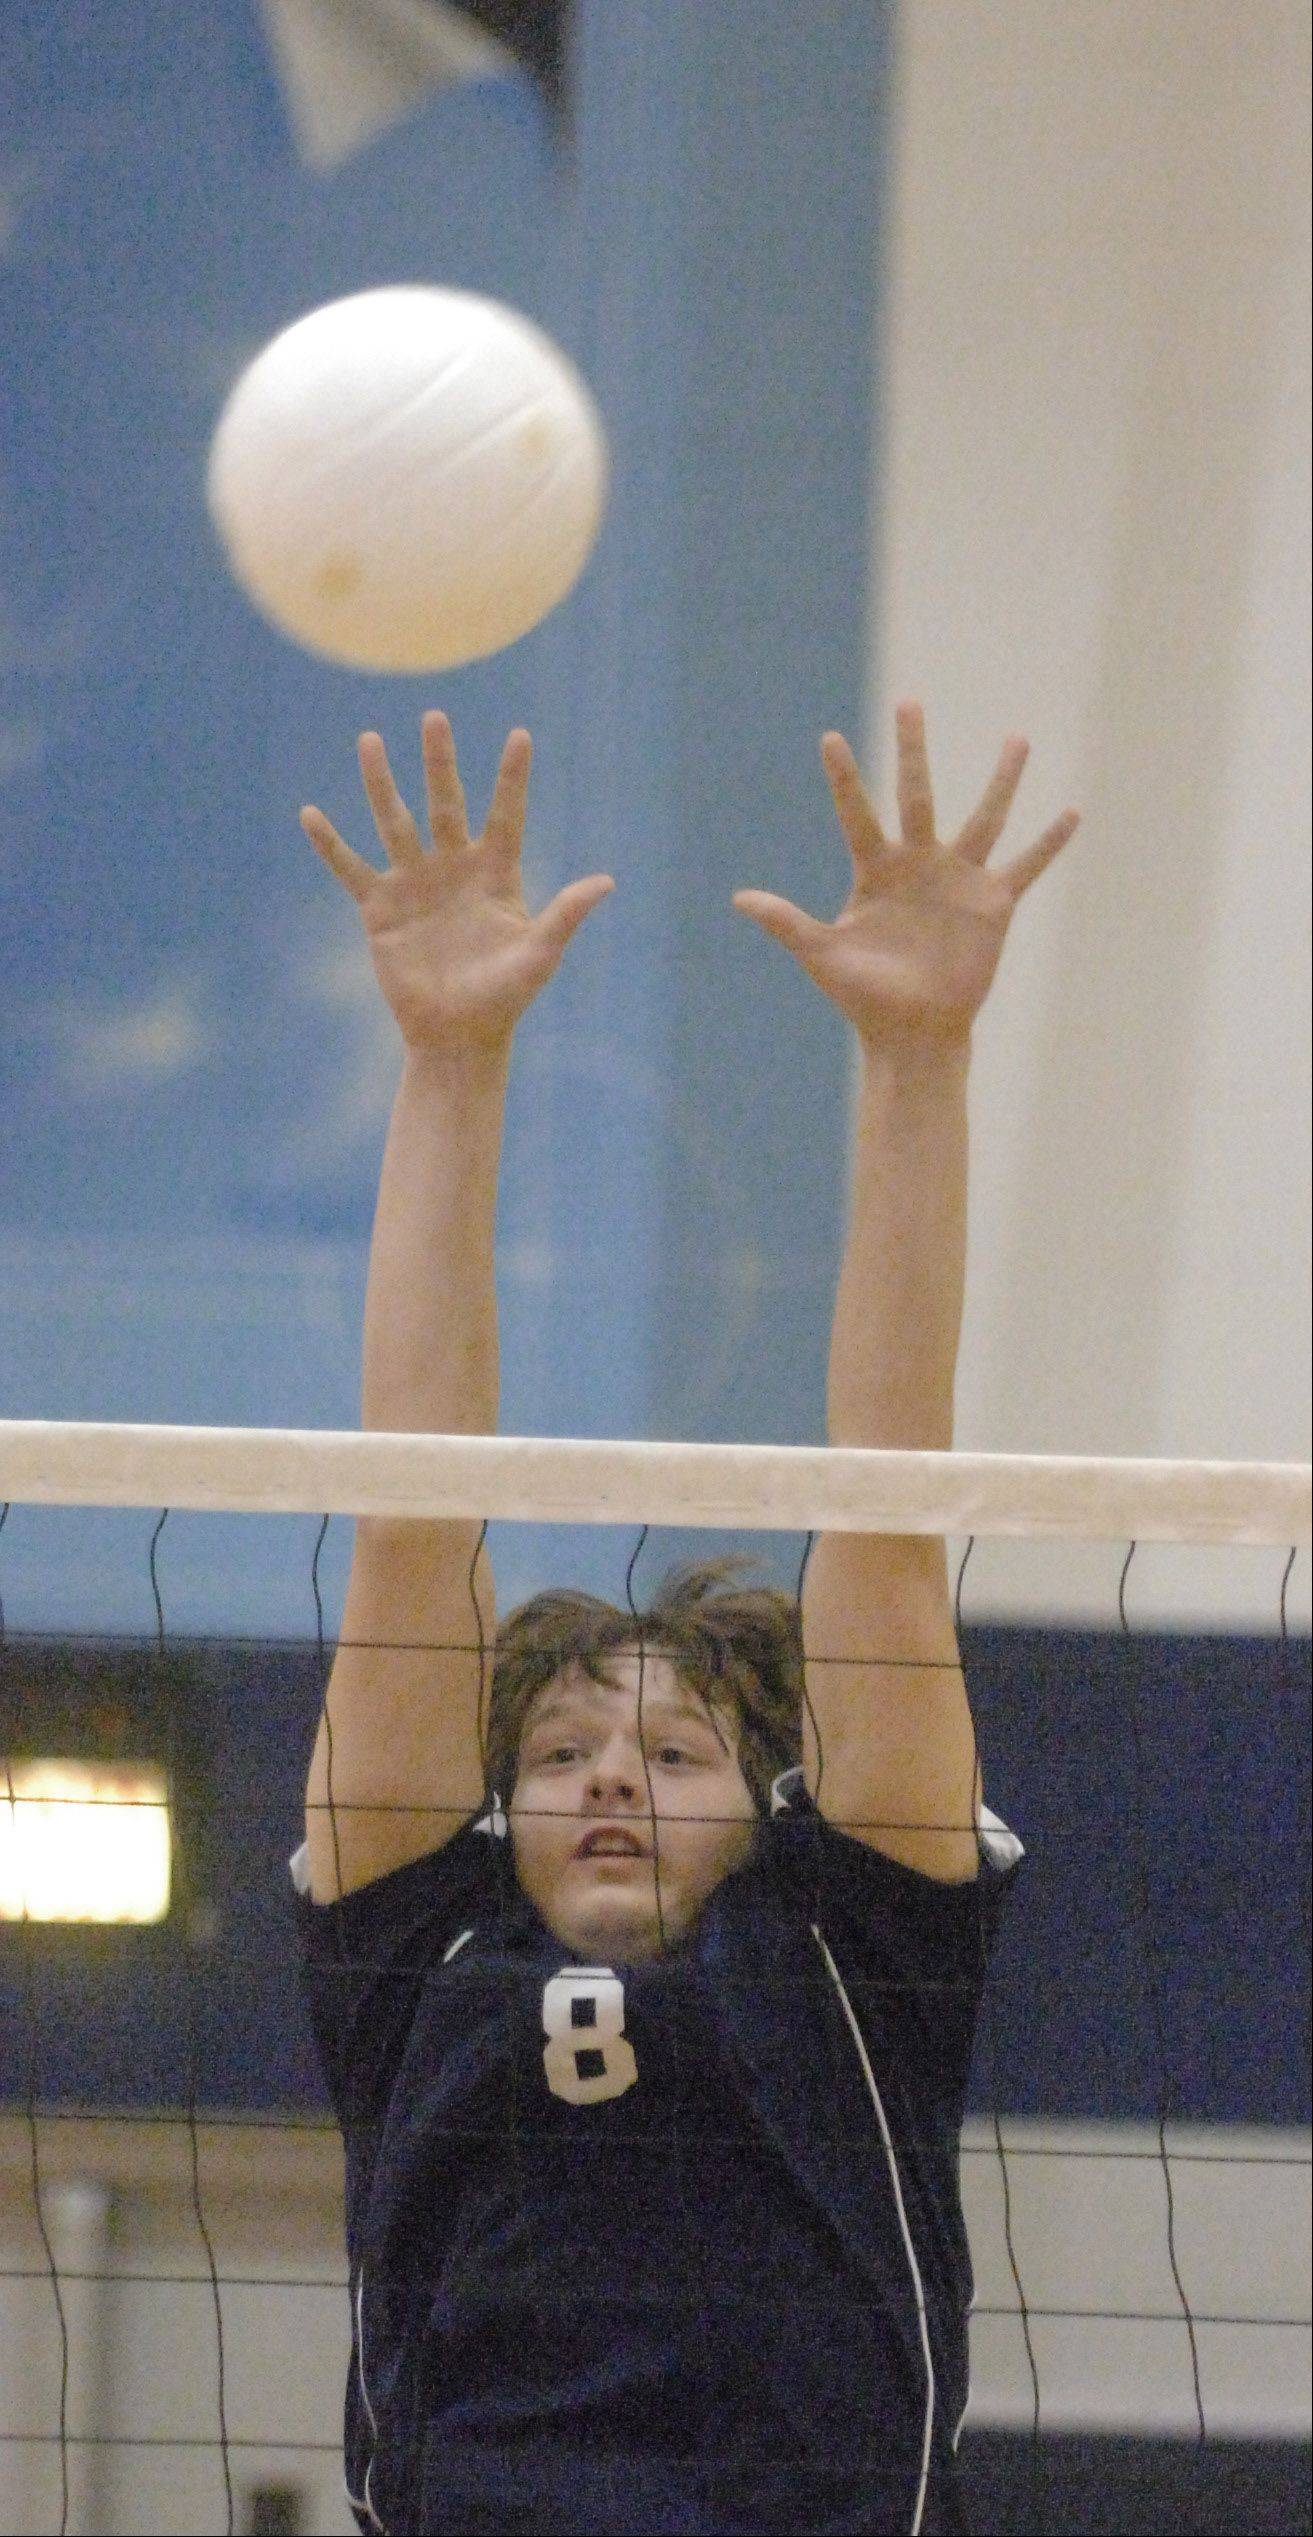 Paul Michna/pmichna@dailyherald.com Gus MacPherson of West Chicago goes up for a block during the Fenton at West Chicago boys volleyball game Tuesday in West Chicago.